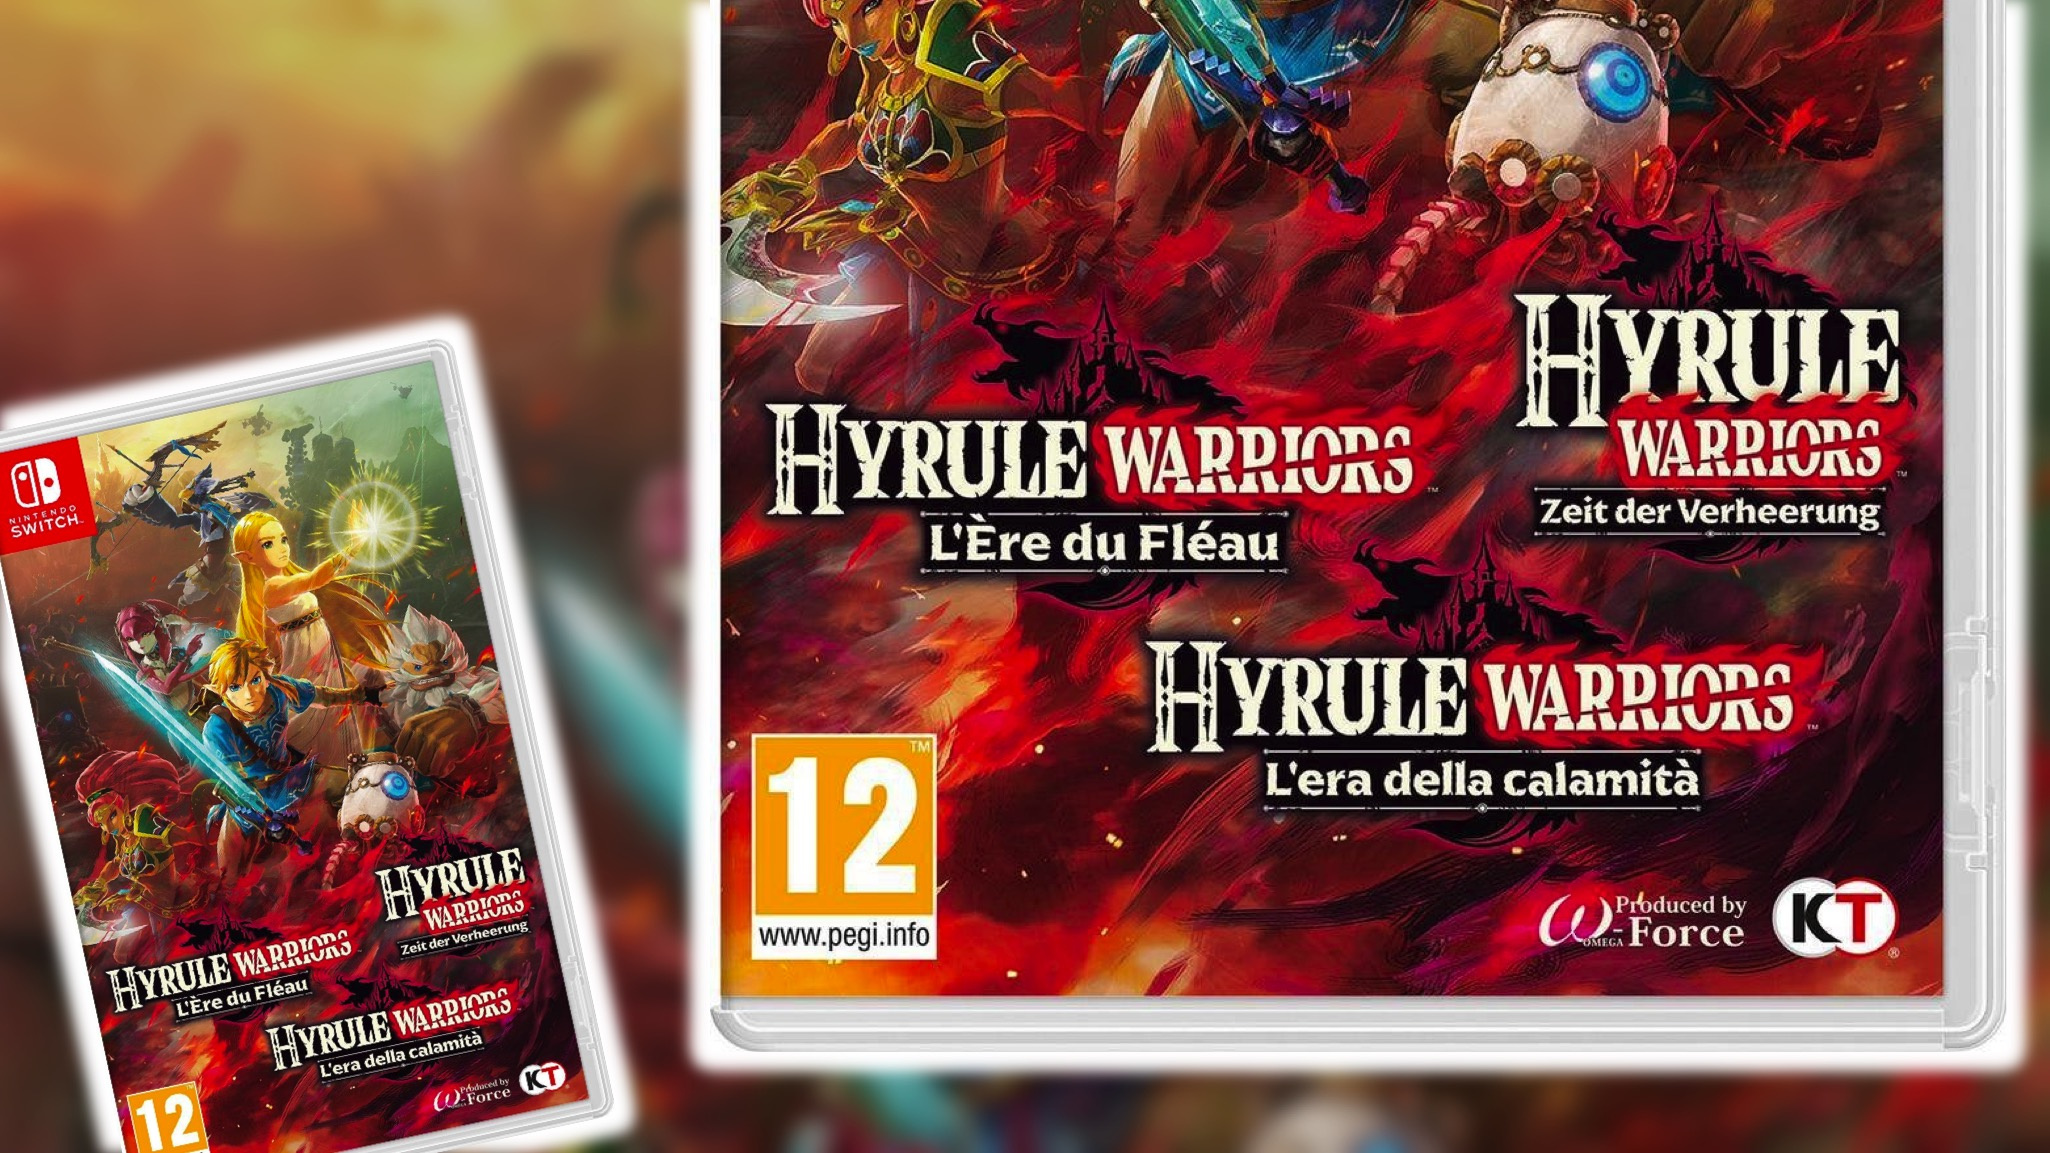 Random Some Hyrule Warriors Age Of Calamity Cases Have Gone A Bit Overboard Nintendo Life